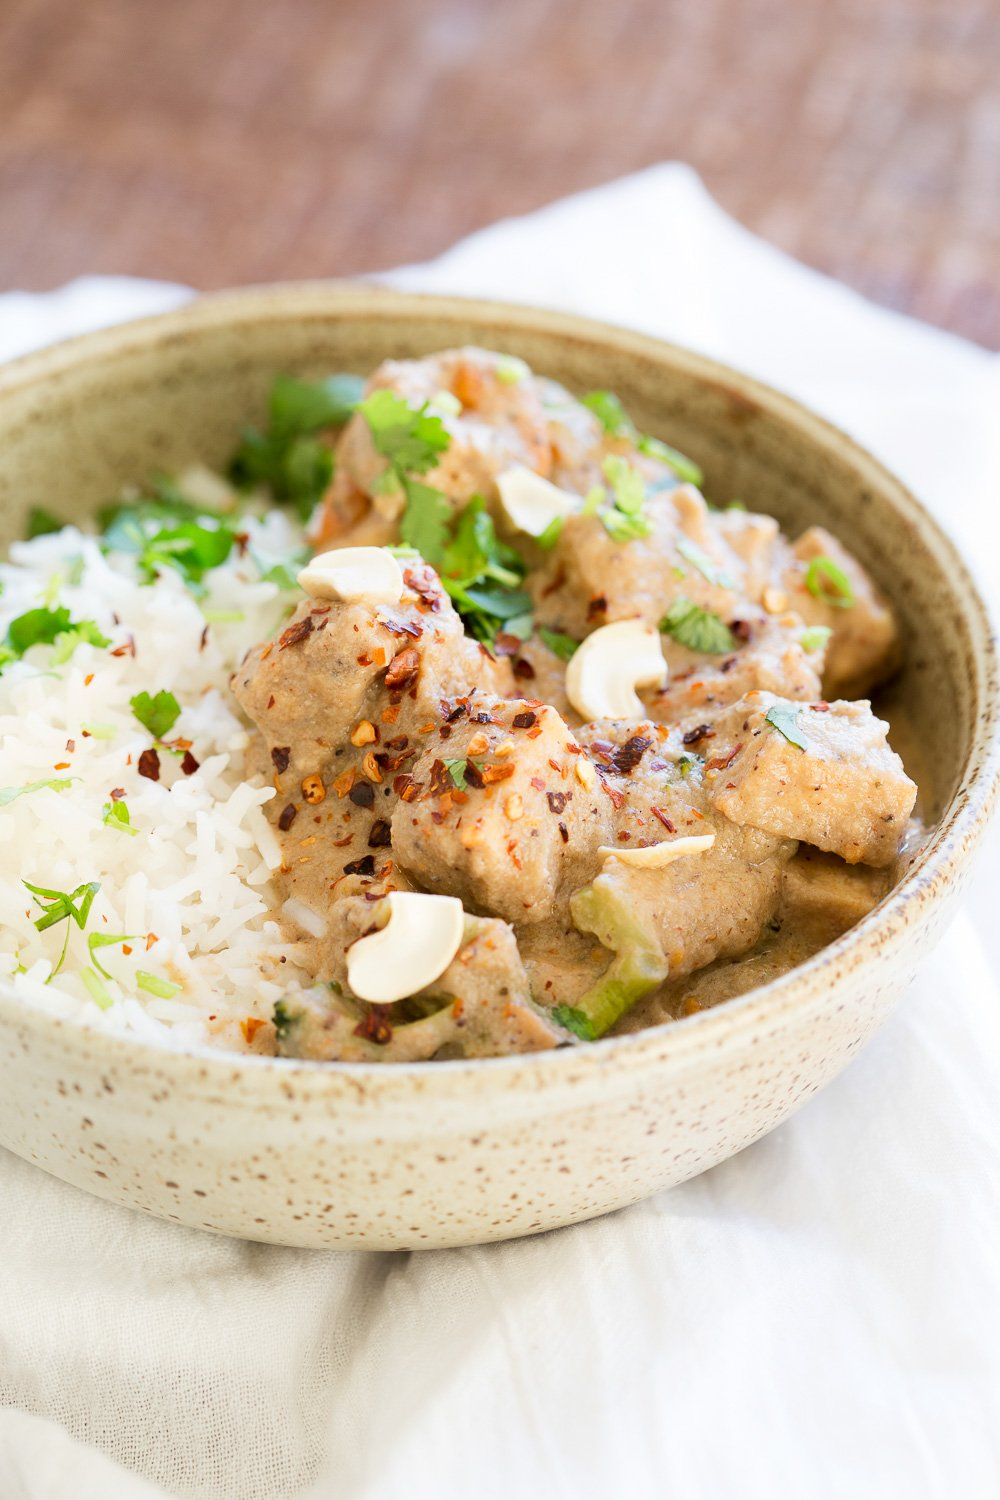 Instant Pot Vegan Korma Recipe with White Korma Sauce. This Creamy Veggies and Tofu Korma is made in Instant Pot Pressure cooker. Stovetop option. #Indian #Vegan #Glutenfree #Recipe #VeganRicha Soyfree, Nutfree option